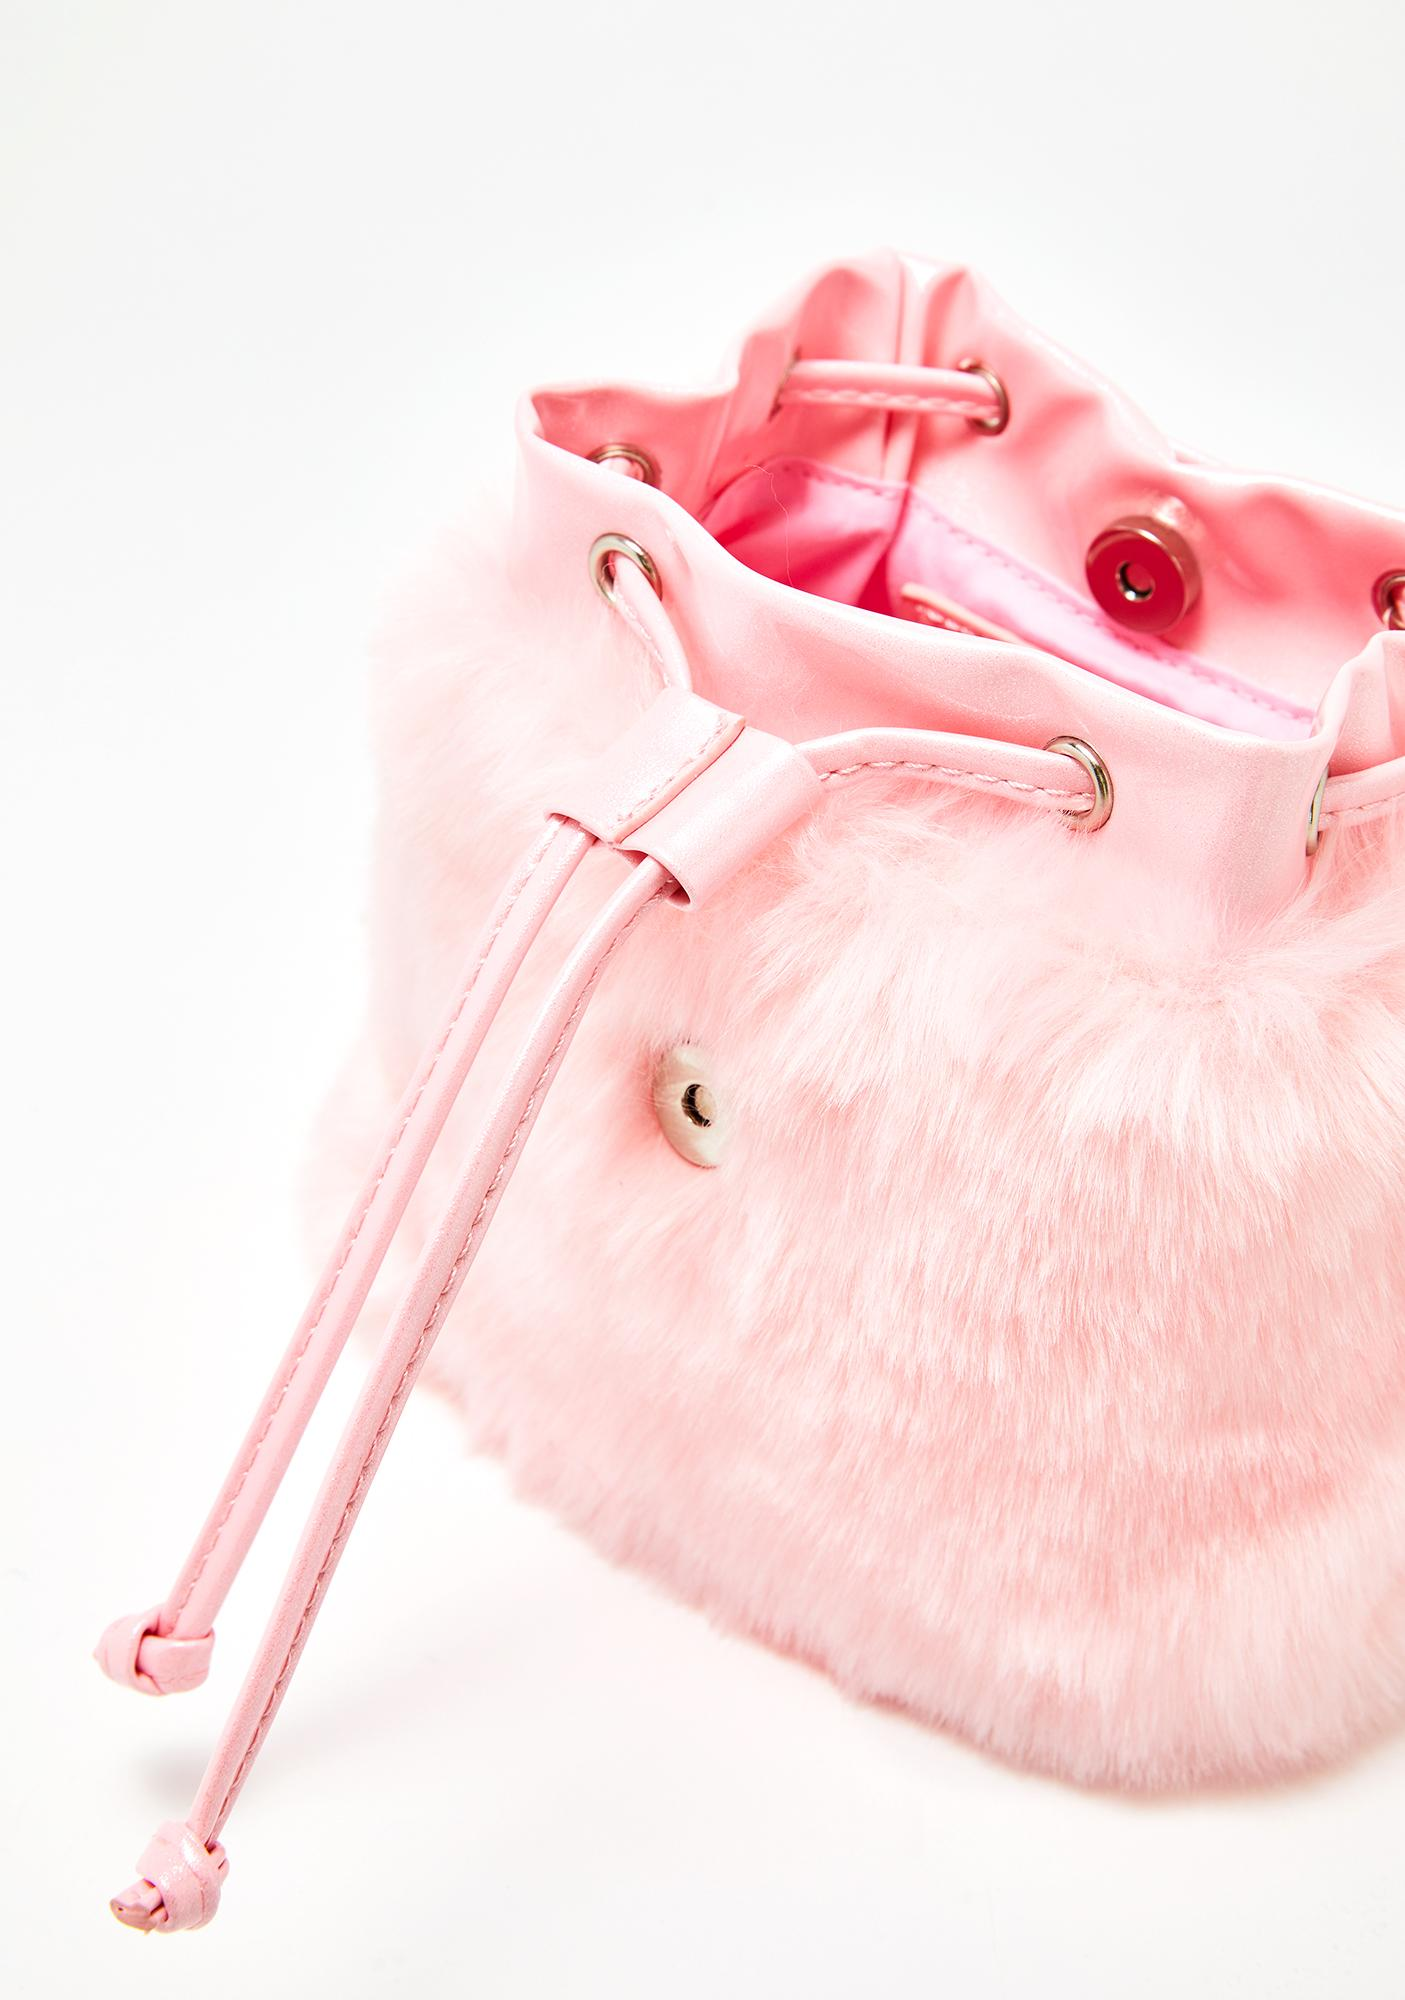 ... Sugar Thrillz At First Sight Fuzzy Backpack 3c998754eee2e